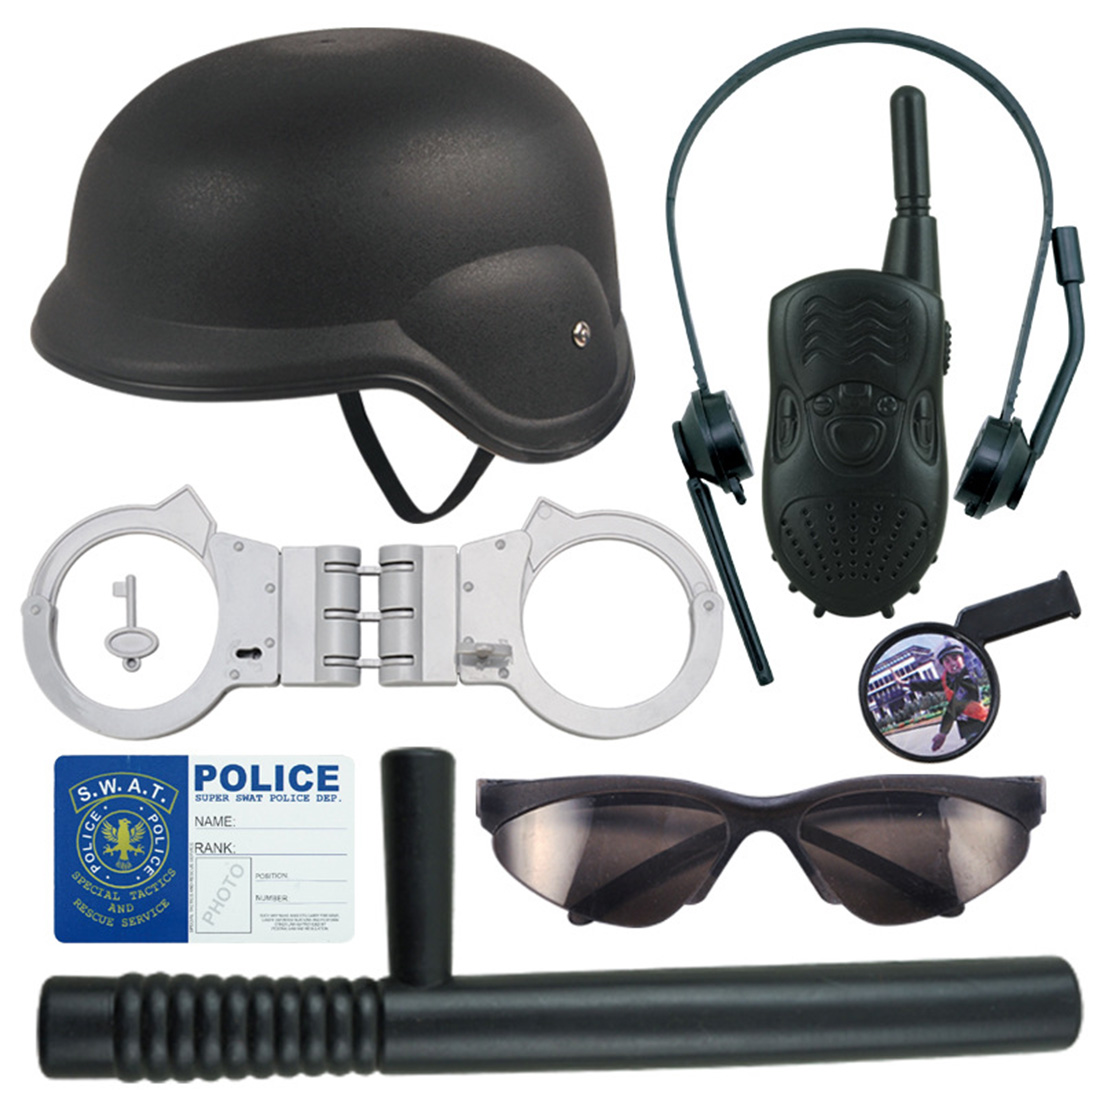 Surwish 8Pcs Children Role Play Police Kit Cop Dress-Up Play Set  Police Play Set For Kids Children Boys Toys New 2019